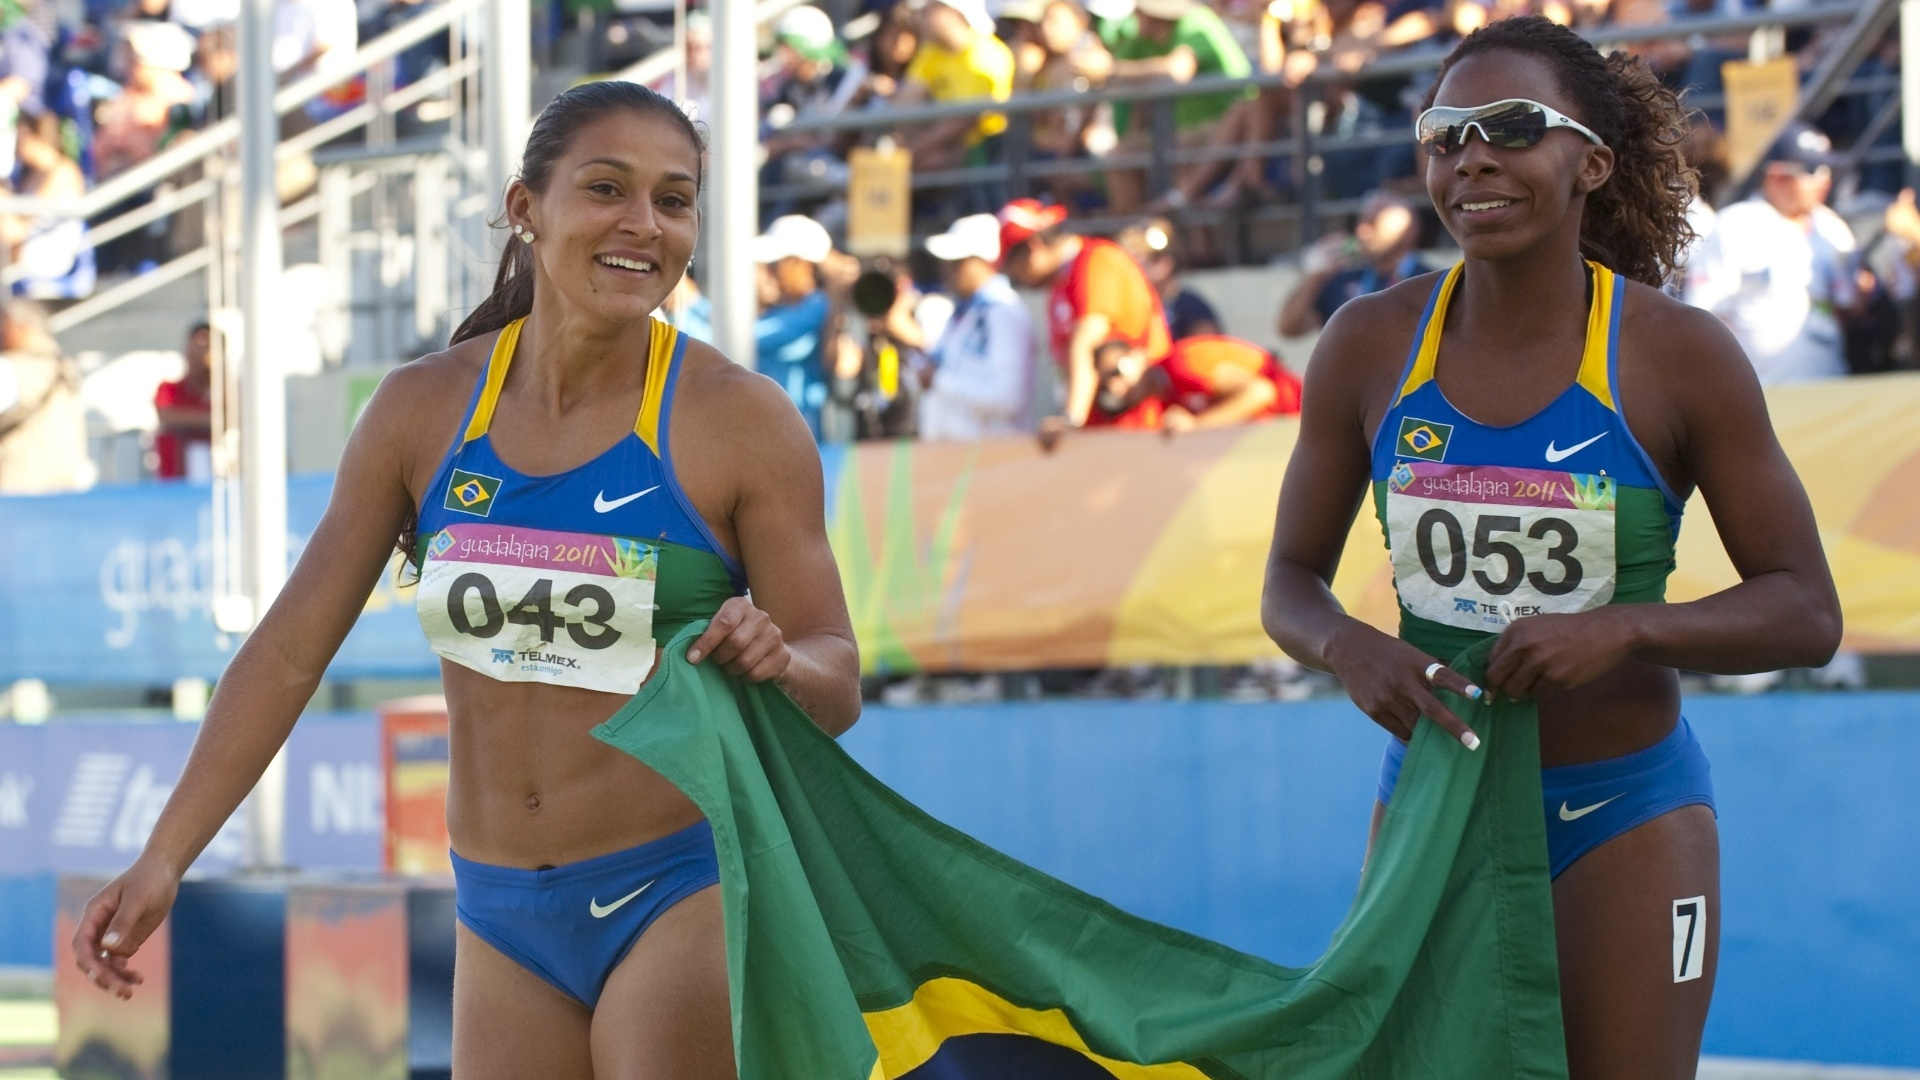 As meninas do revezamento 4x100 m venceram o ouro em Guadalajara (28/10/2011)